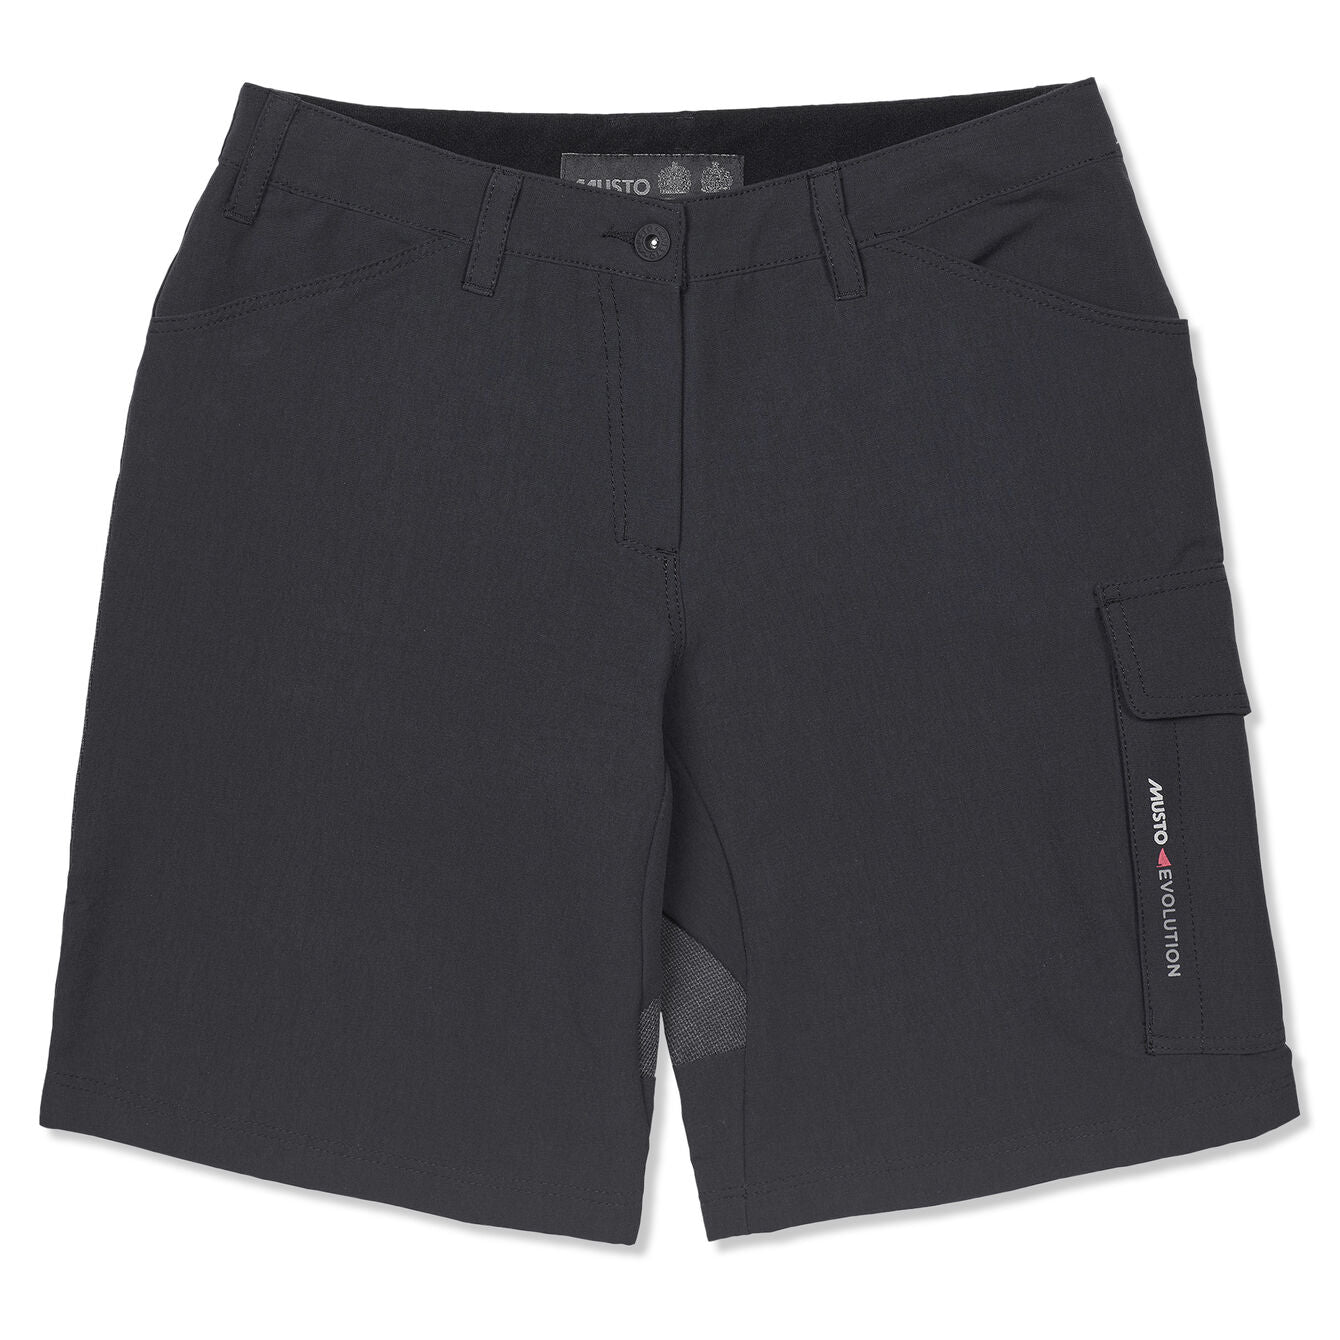 WOMEN'S EVOLUTION PERFORMANCE UV SHORT